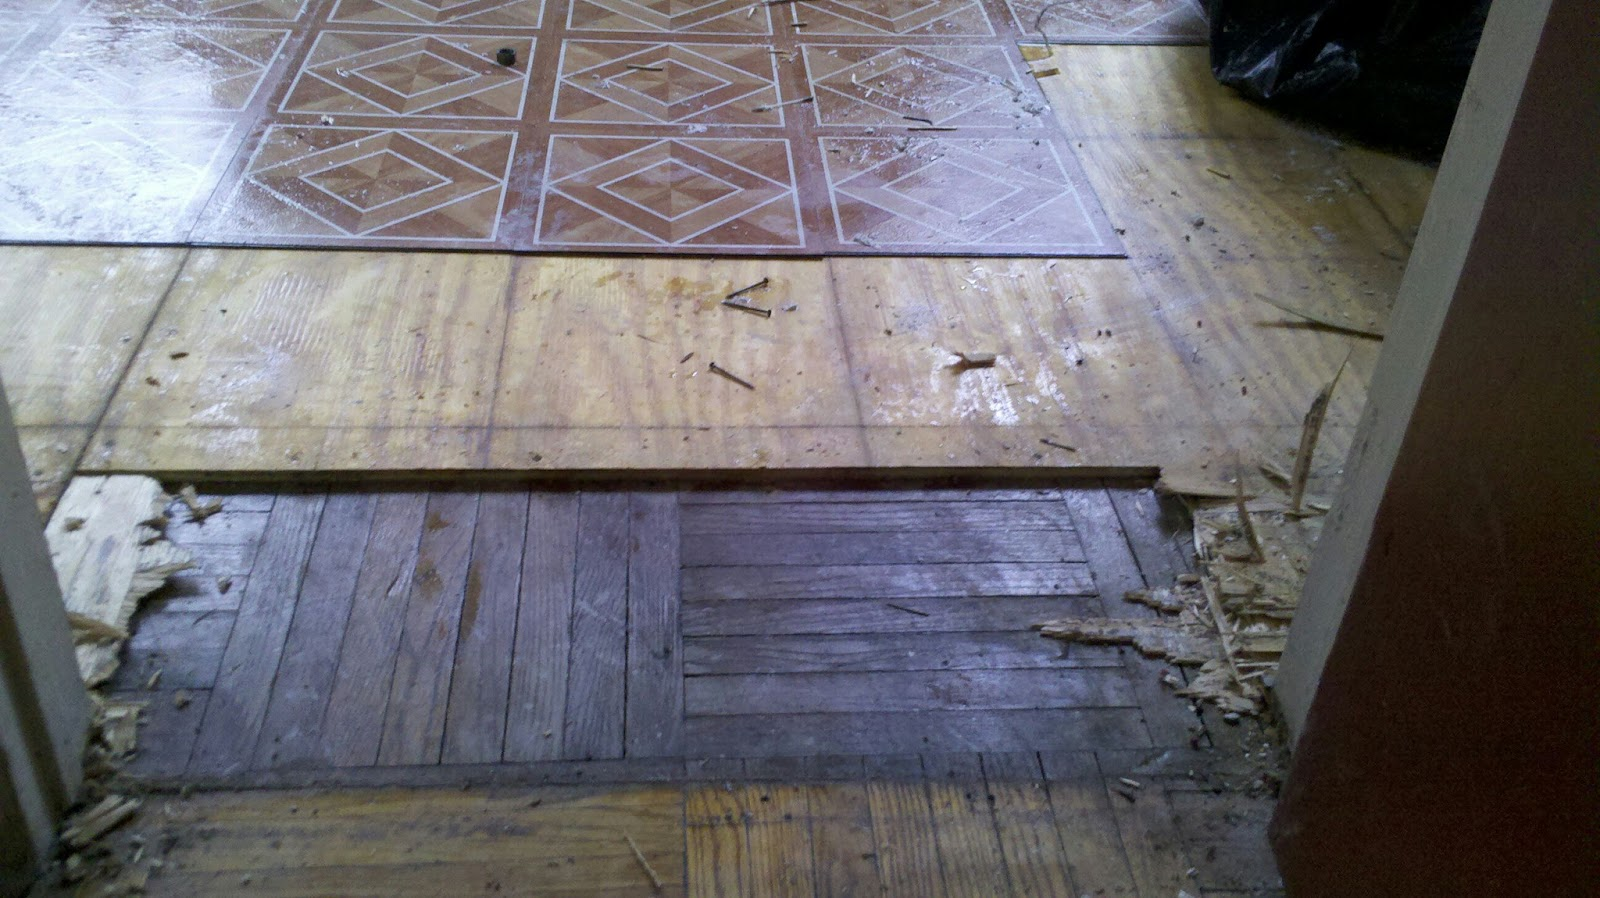 Bk to the fullest projects sterling place renovation for Wood floor under carpet